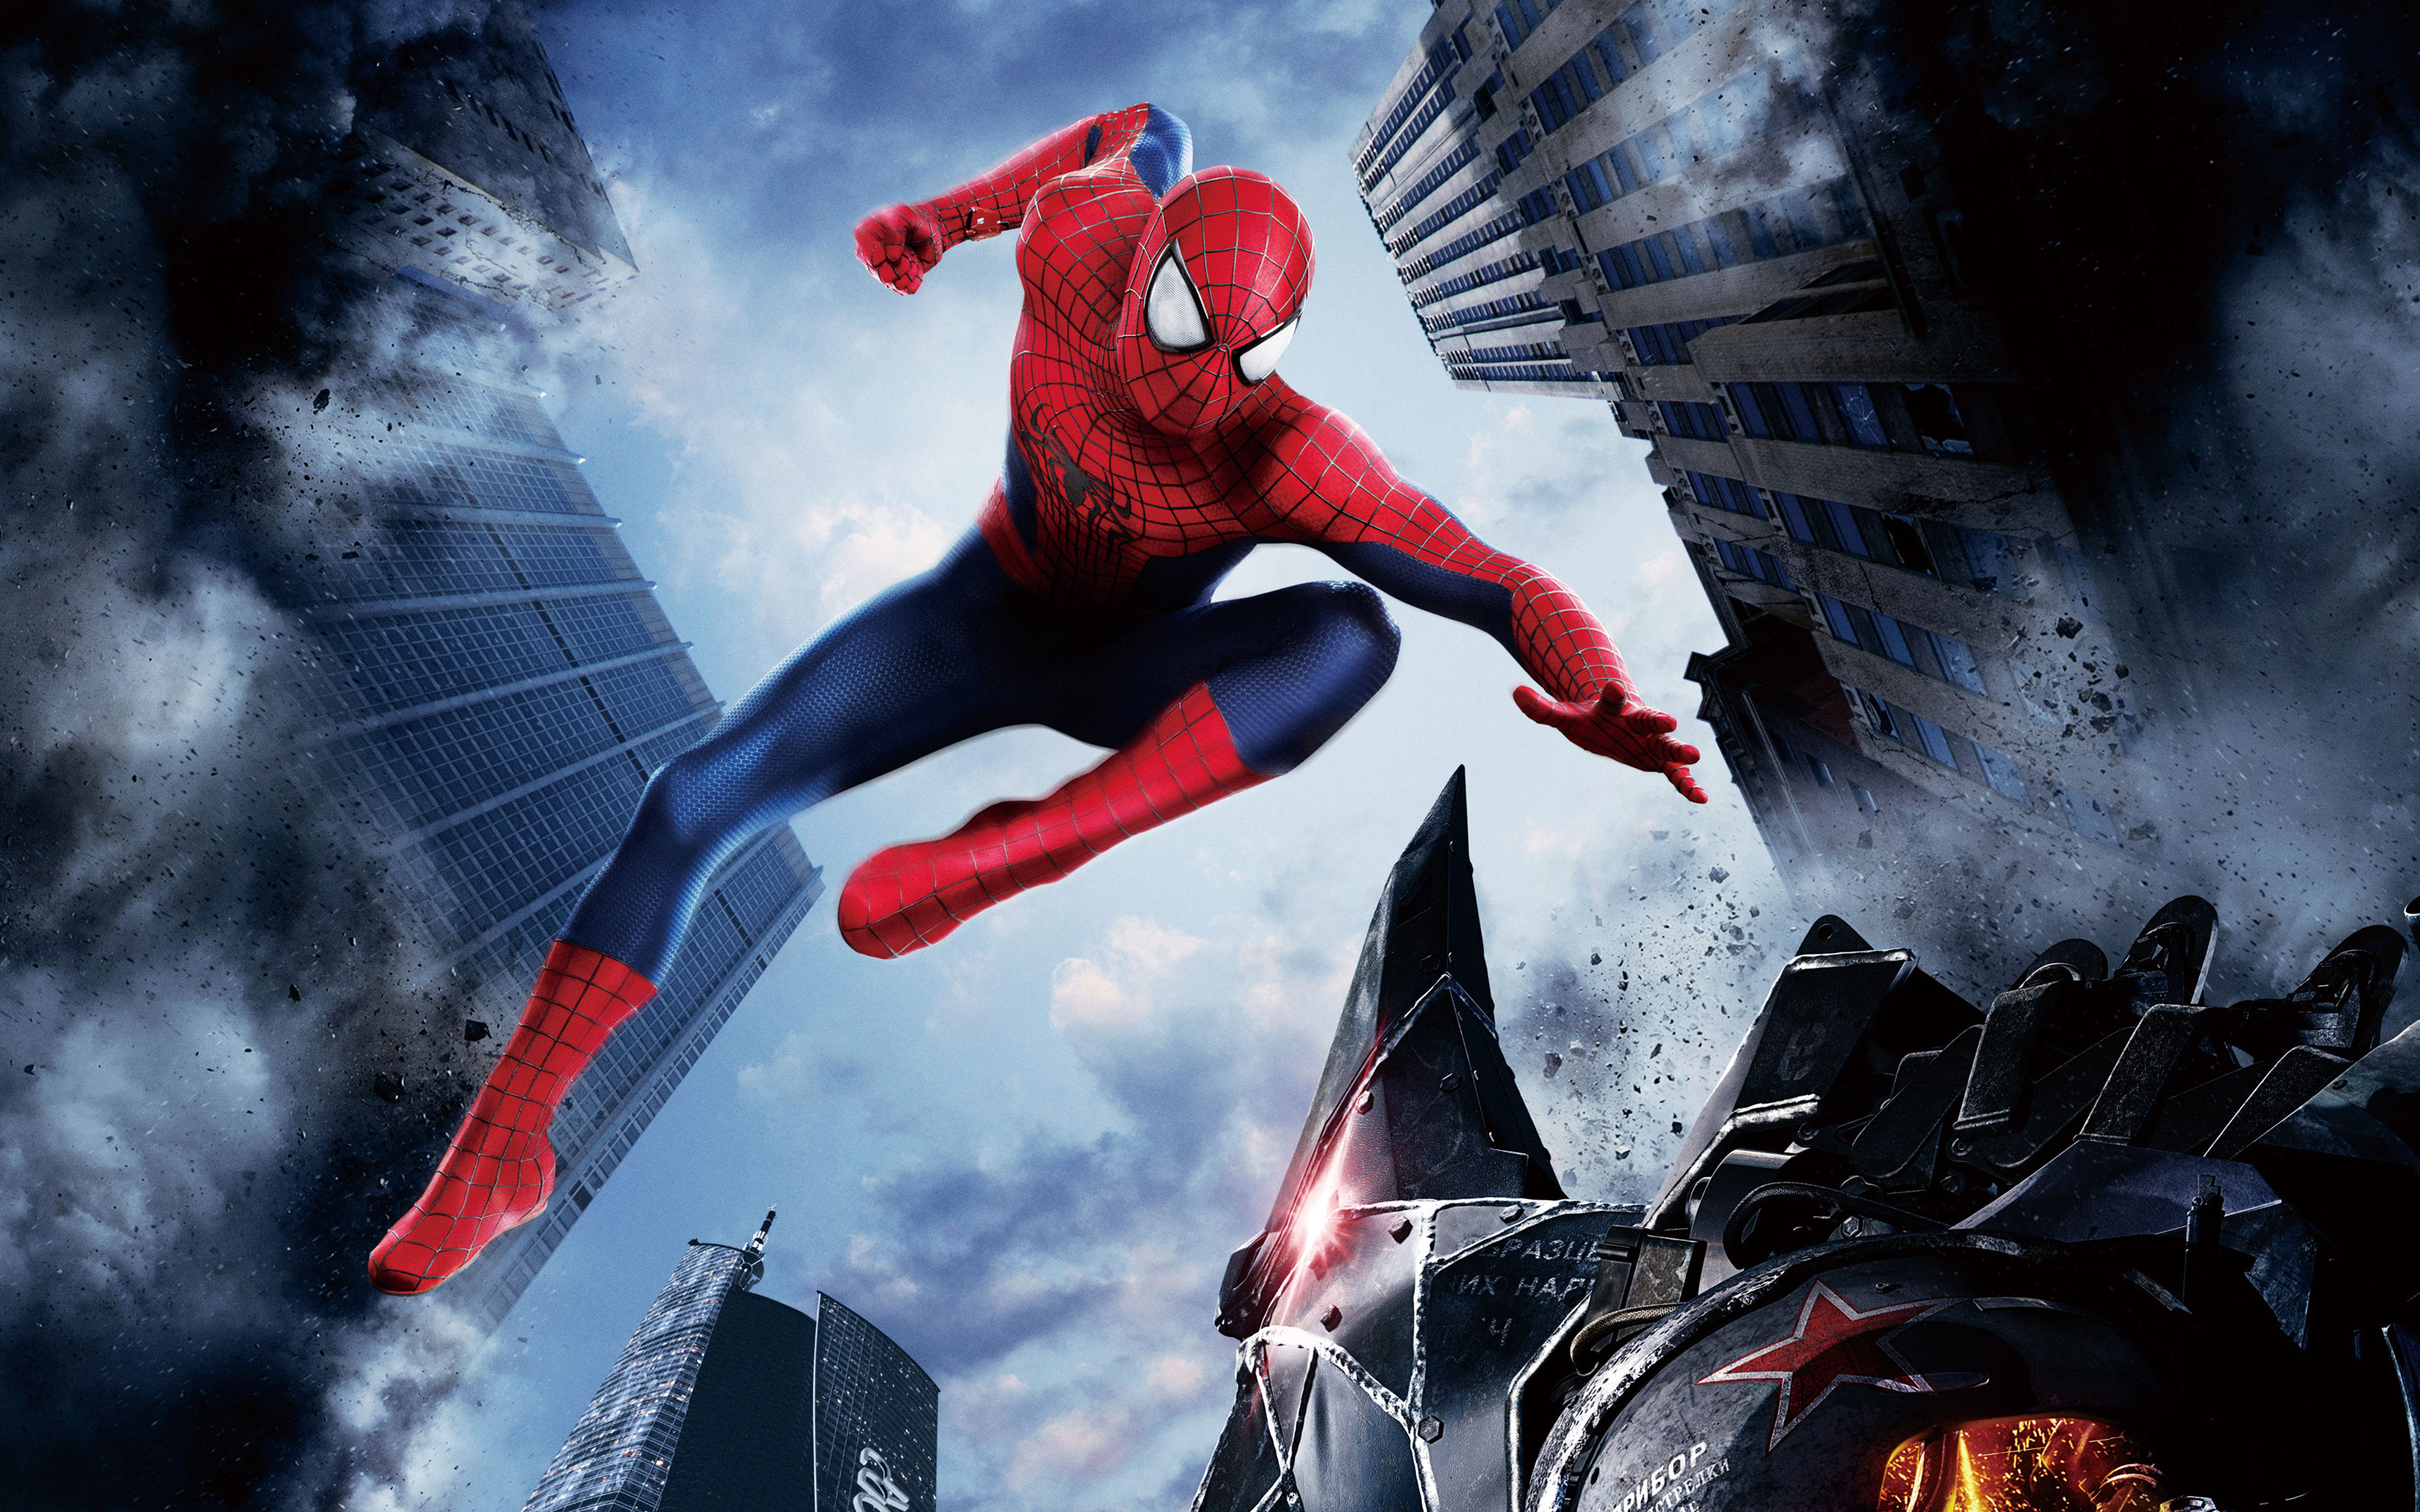 Spider Man Image Download: Download The Amazing Spider Man Wallpaper Download Gallery